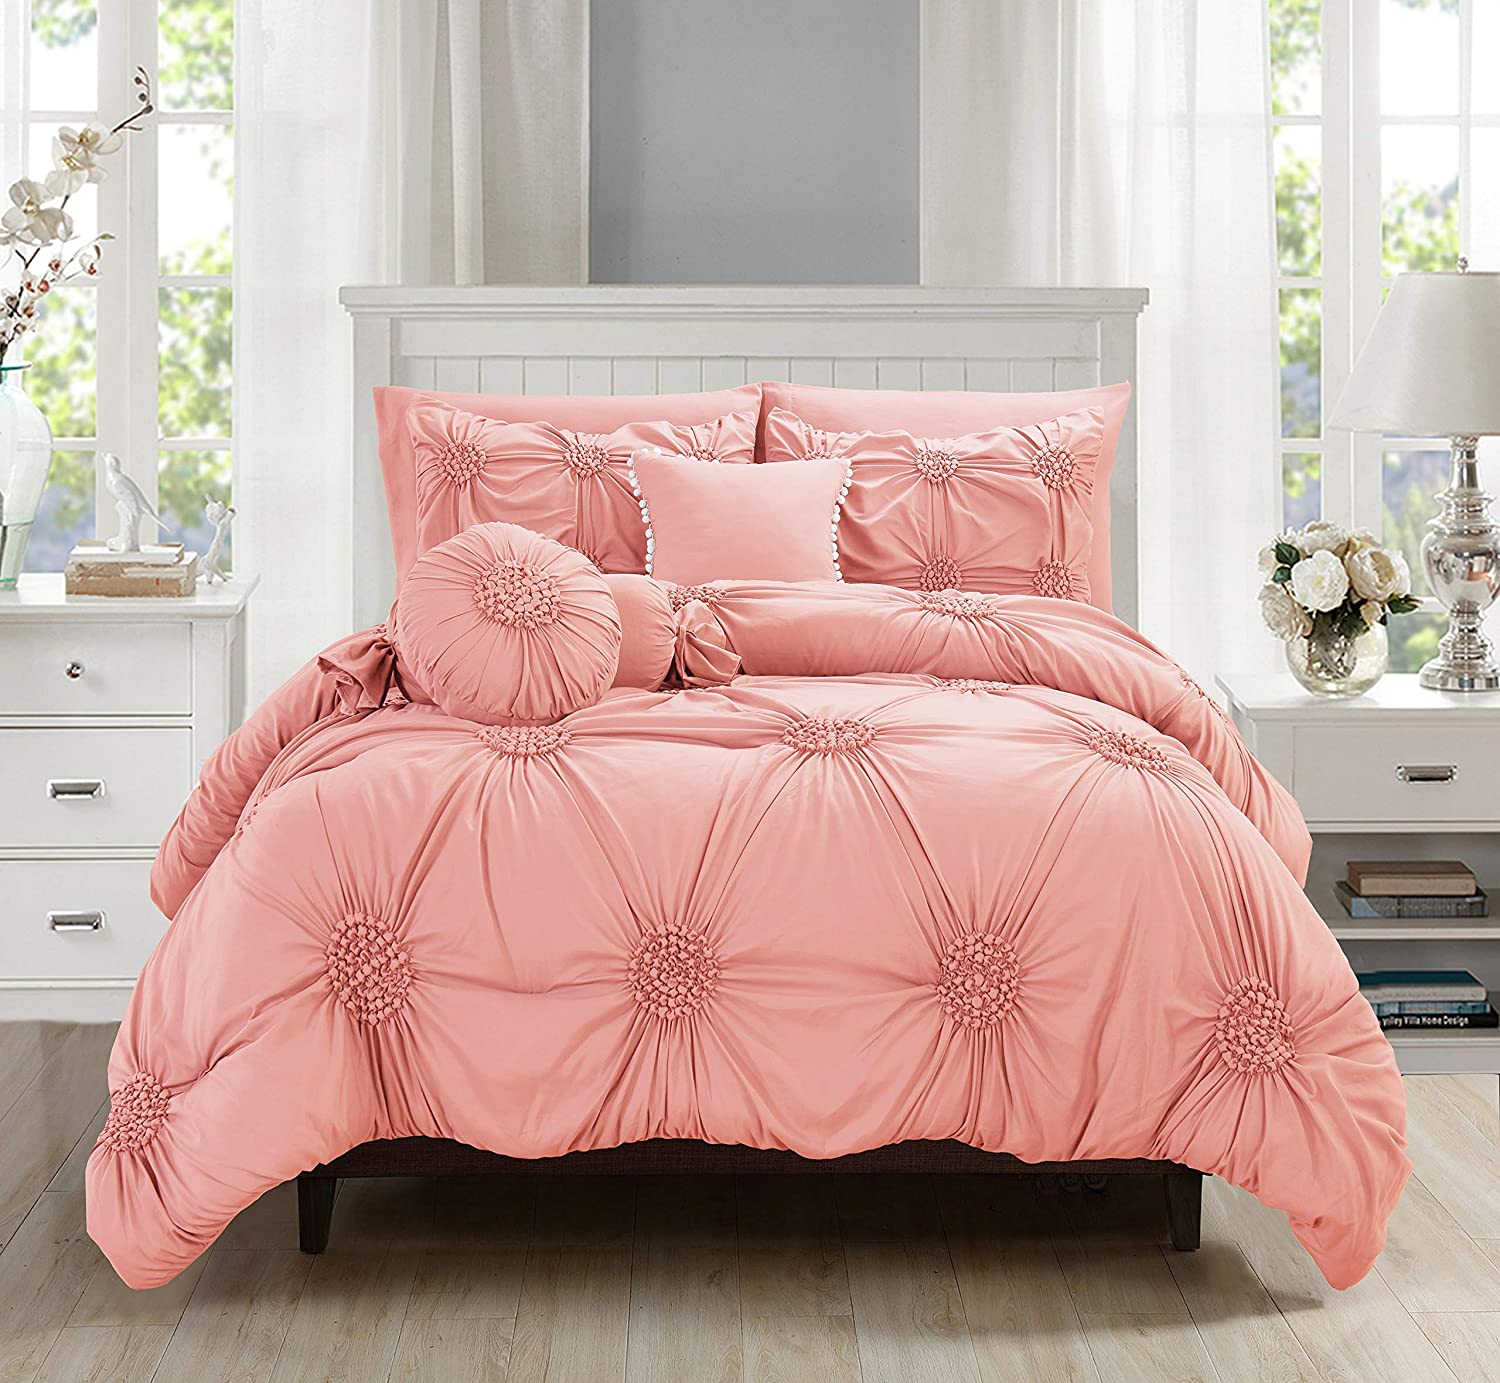 10 Piece Bed In A Bag Sunflower Comforter Set Silky Soft Complete Comforter Set Includes Bed Sheet Set With Double Sided Storage Pockets Featured Full Queen Dusty Rose Walmart Com Walmart Com